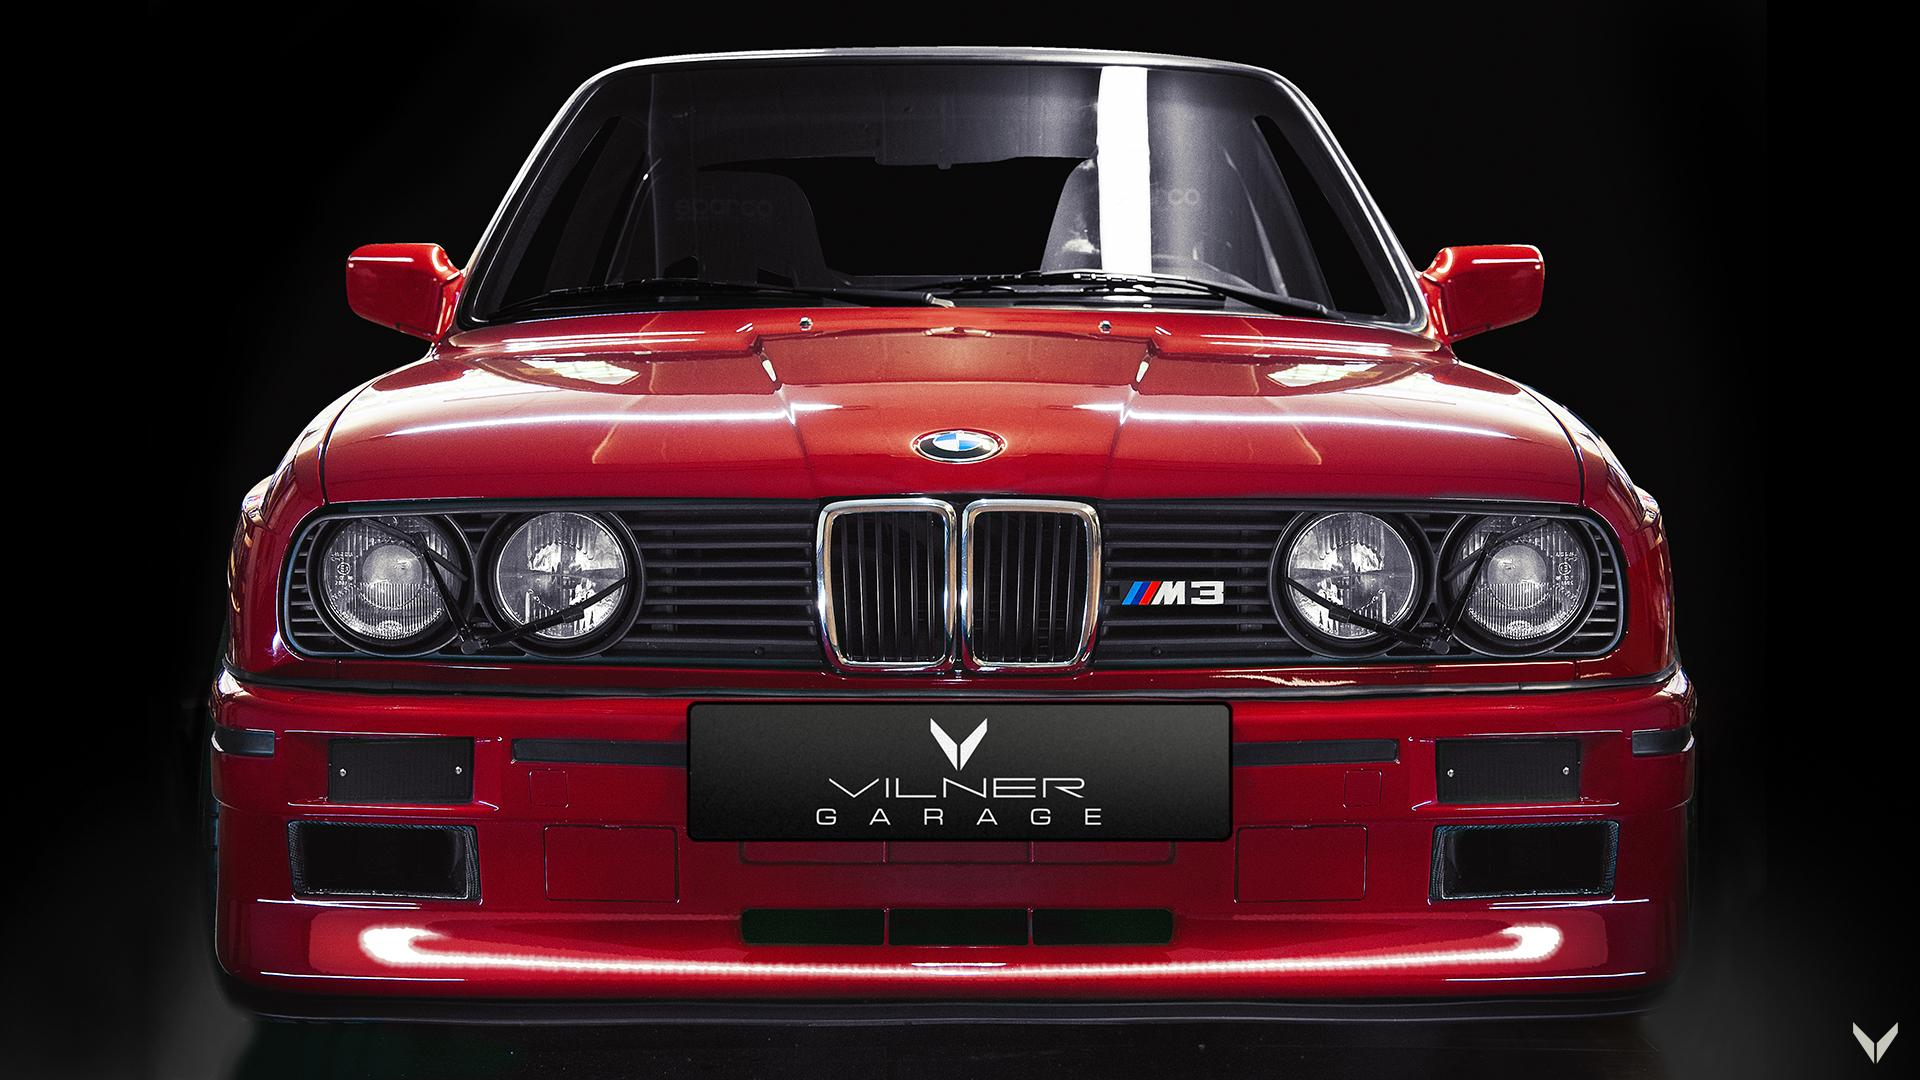 BMW M3 E30 Evo door Vilner Garage grille koplamp